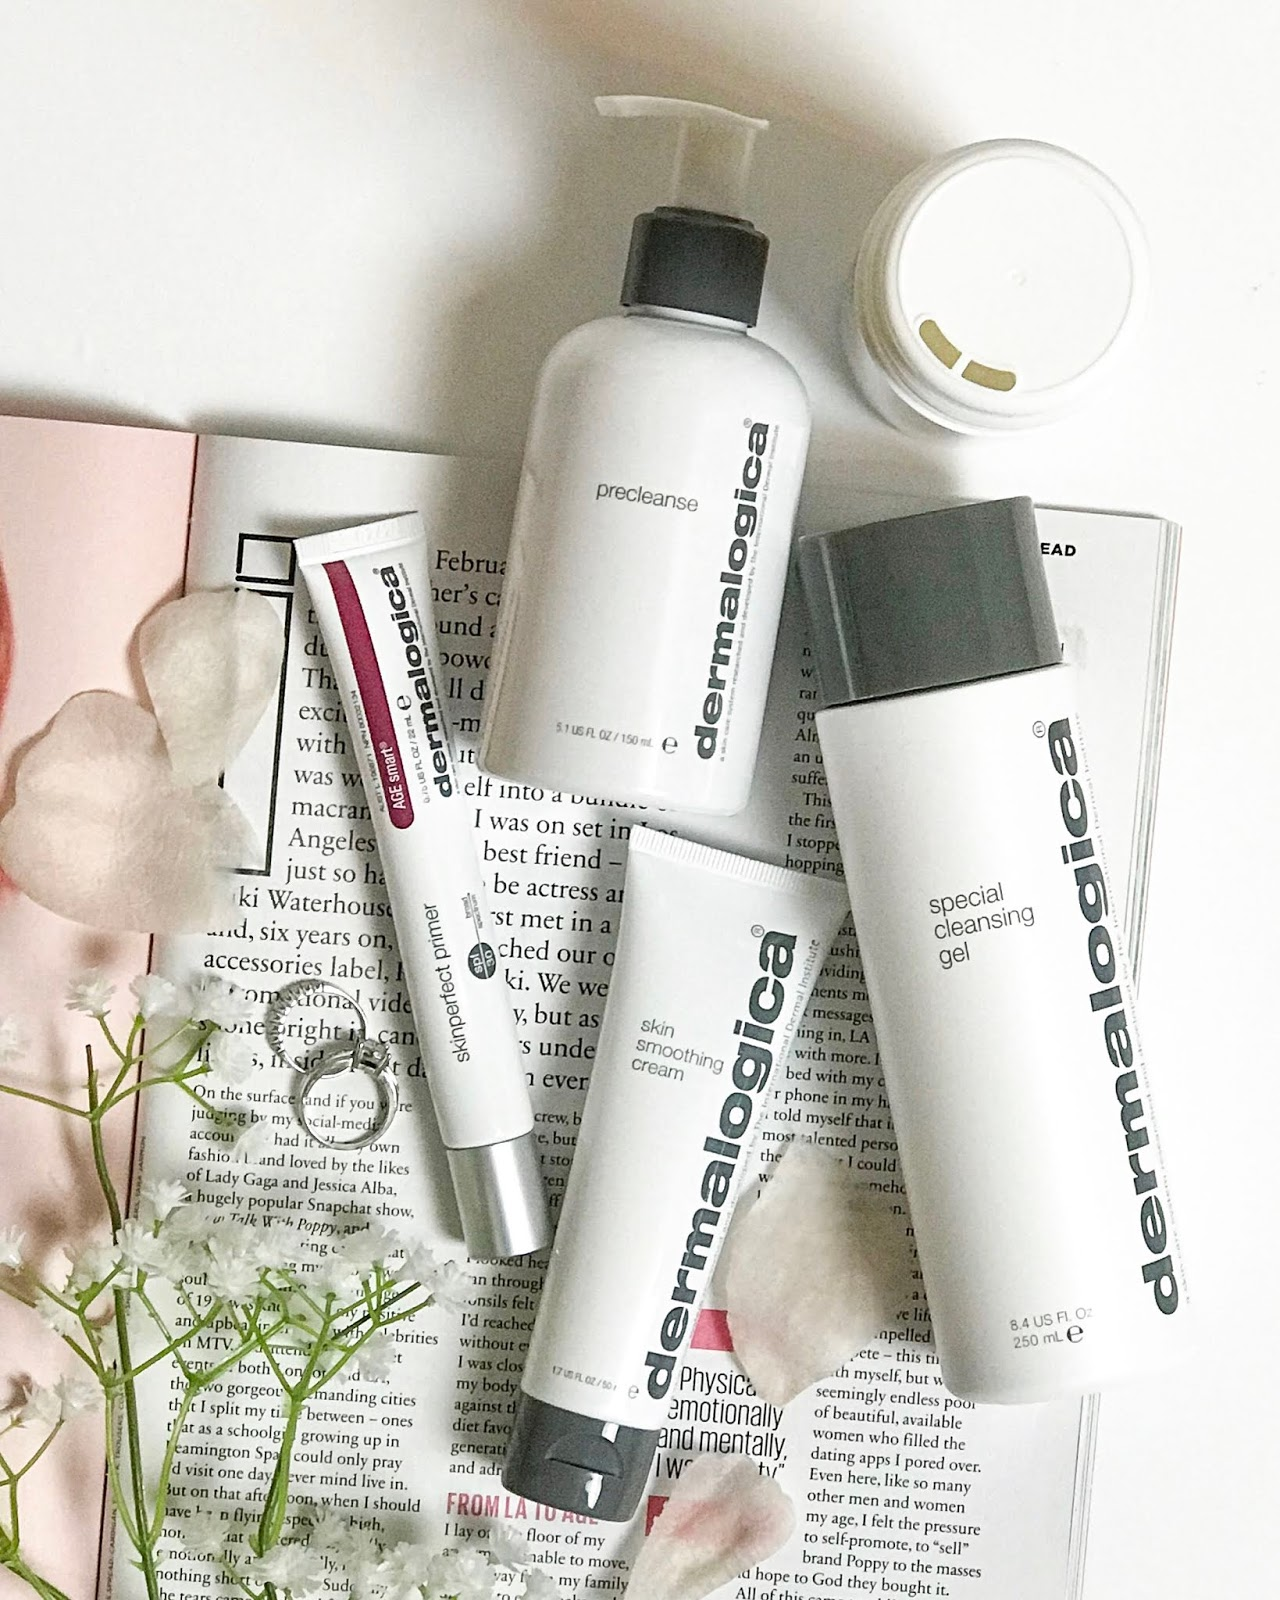 Dermalogica Skincare Brand Review Blog Post